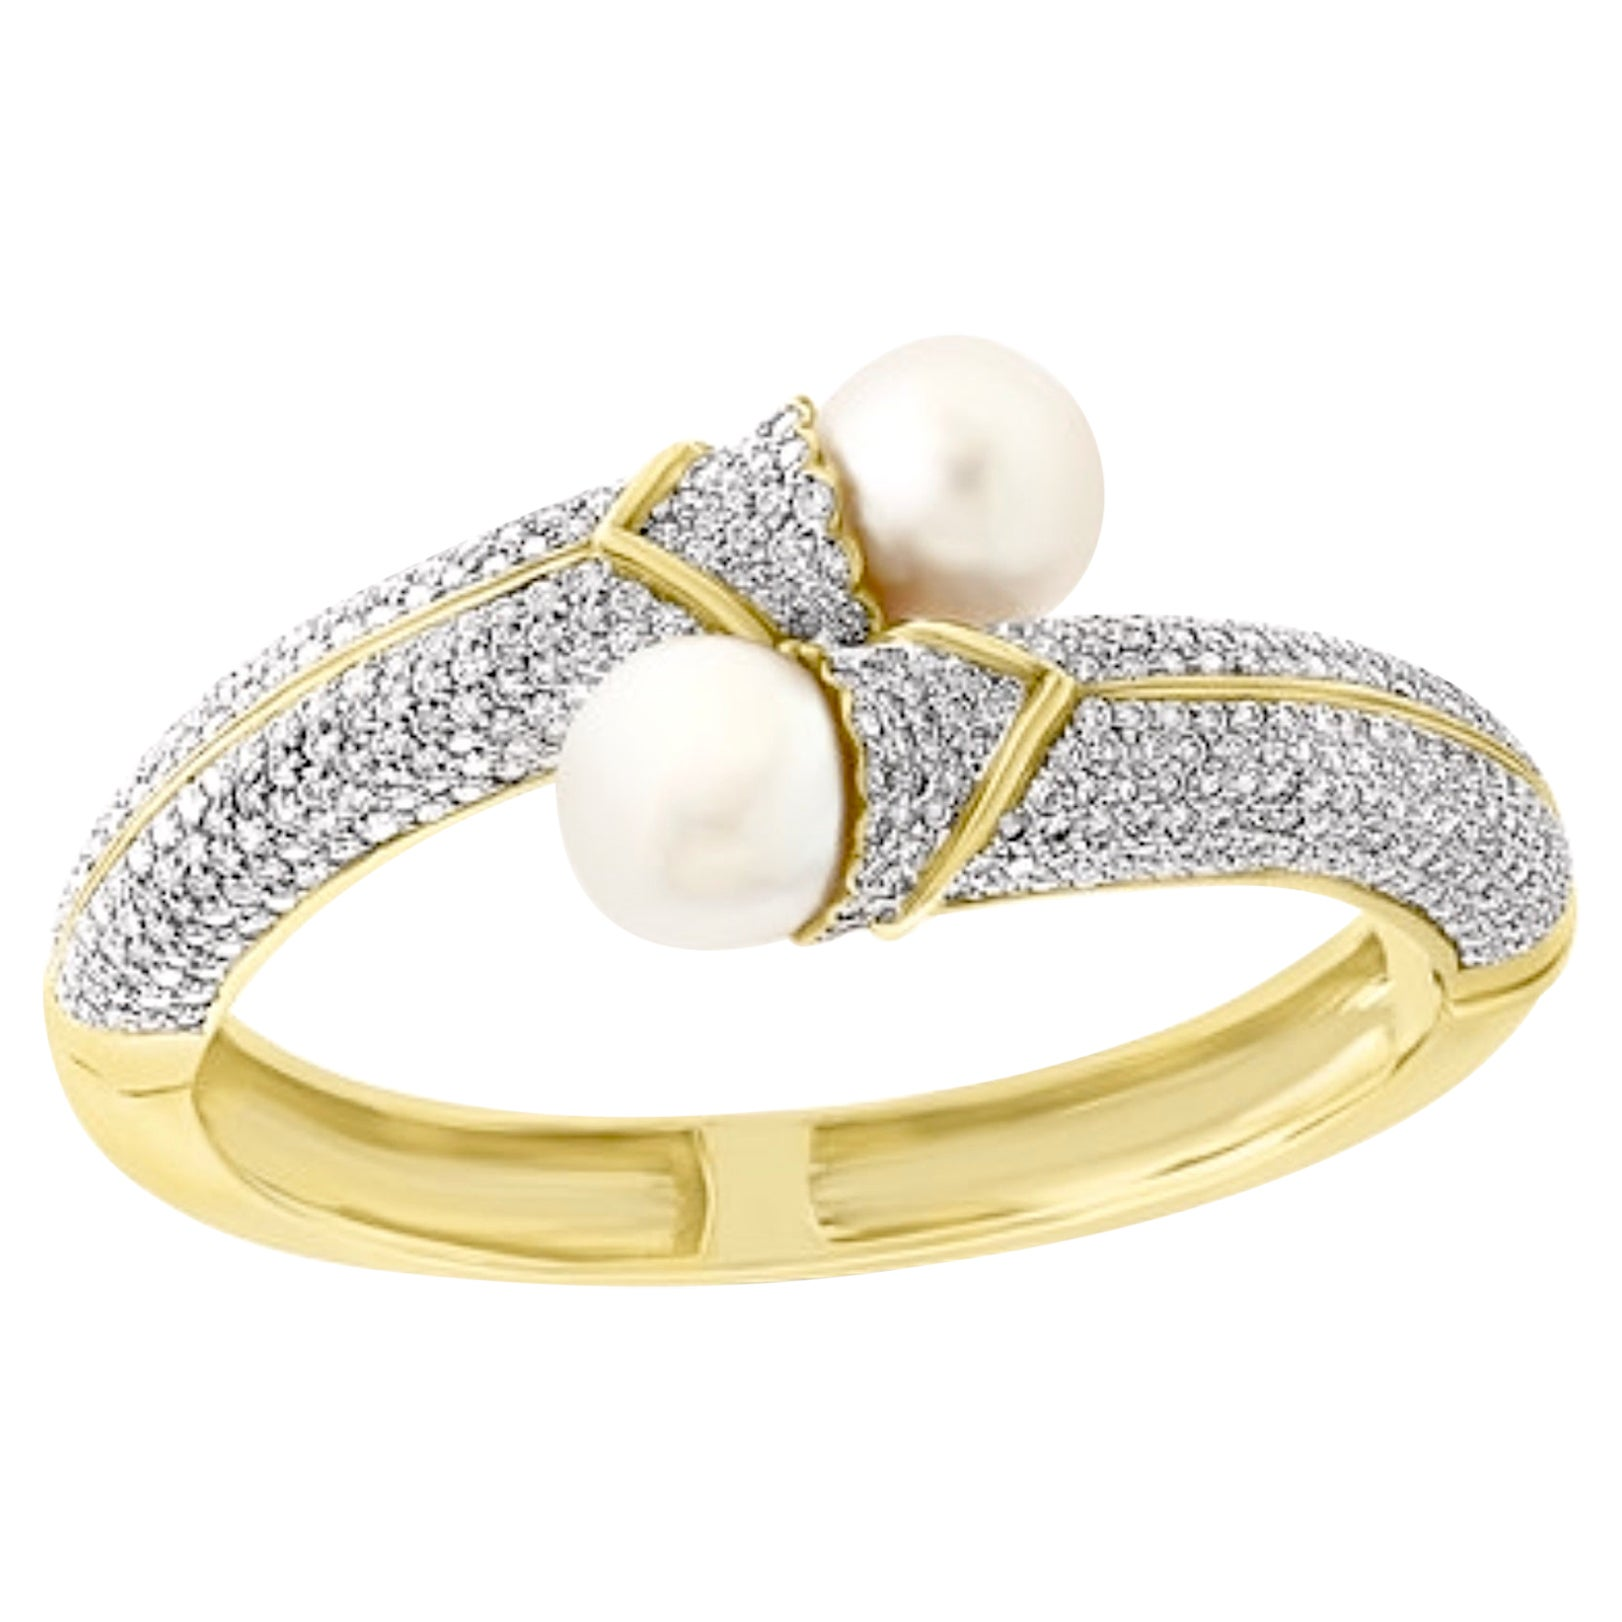 South Sea Pearl and 8 Carat Diamond Bangle in 18 Karat Yellow Gold Estate